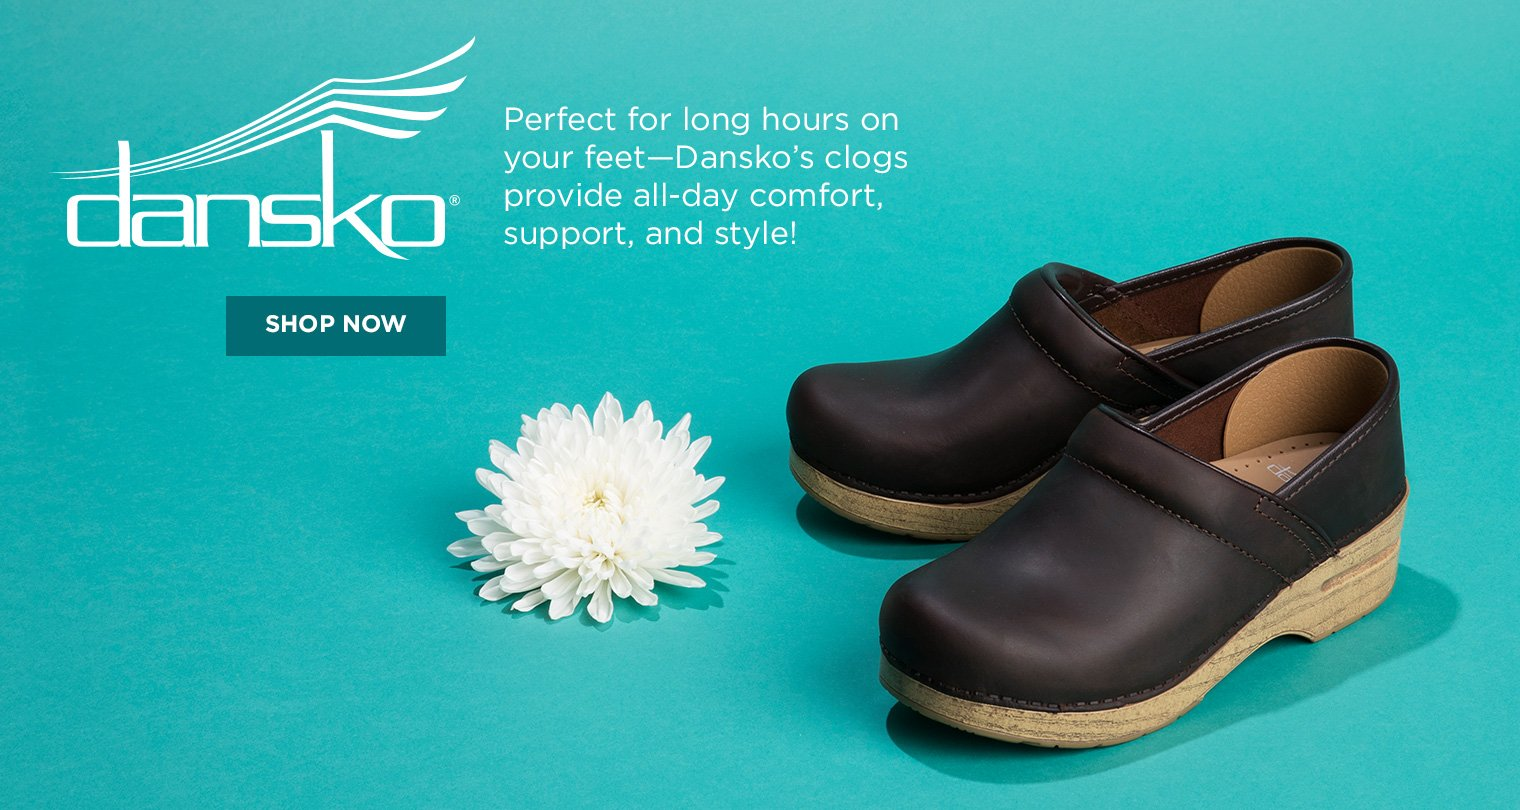 b36a046901a19 Perfect for long hours on your feet, Dansko's clogs provide all-day